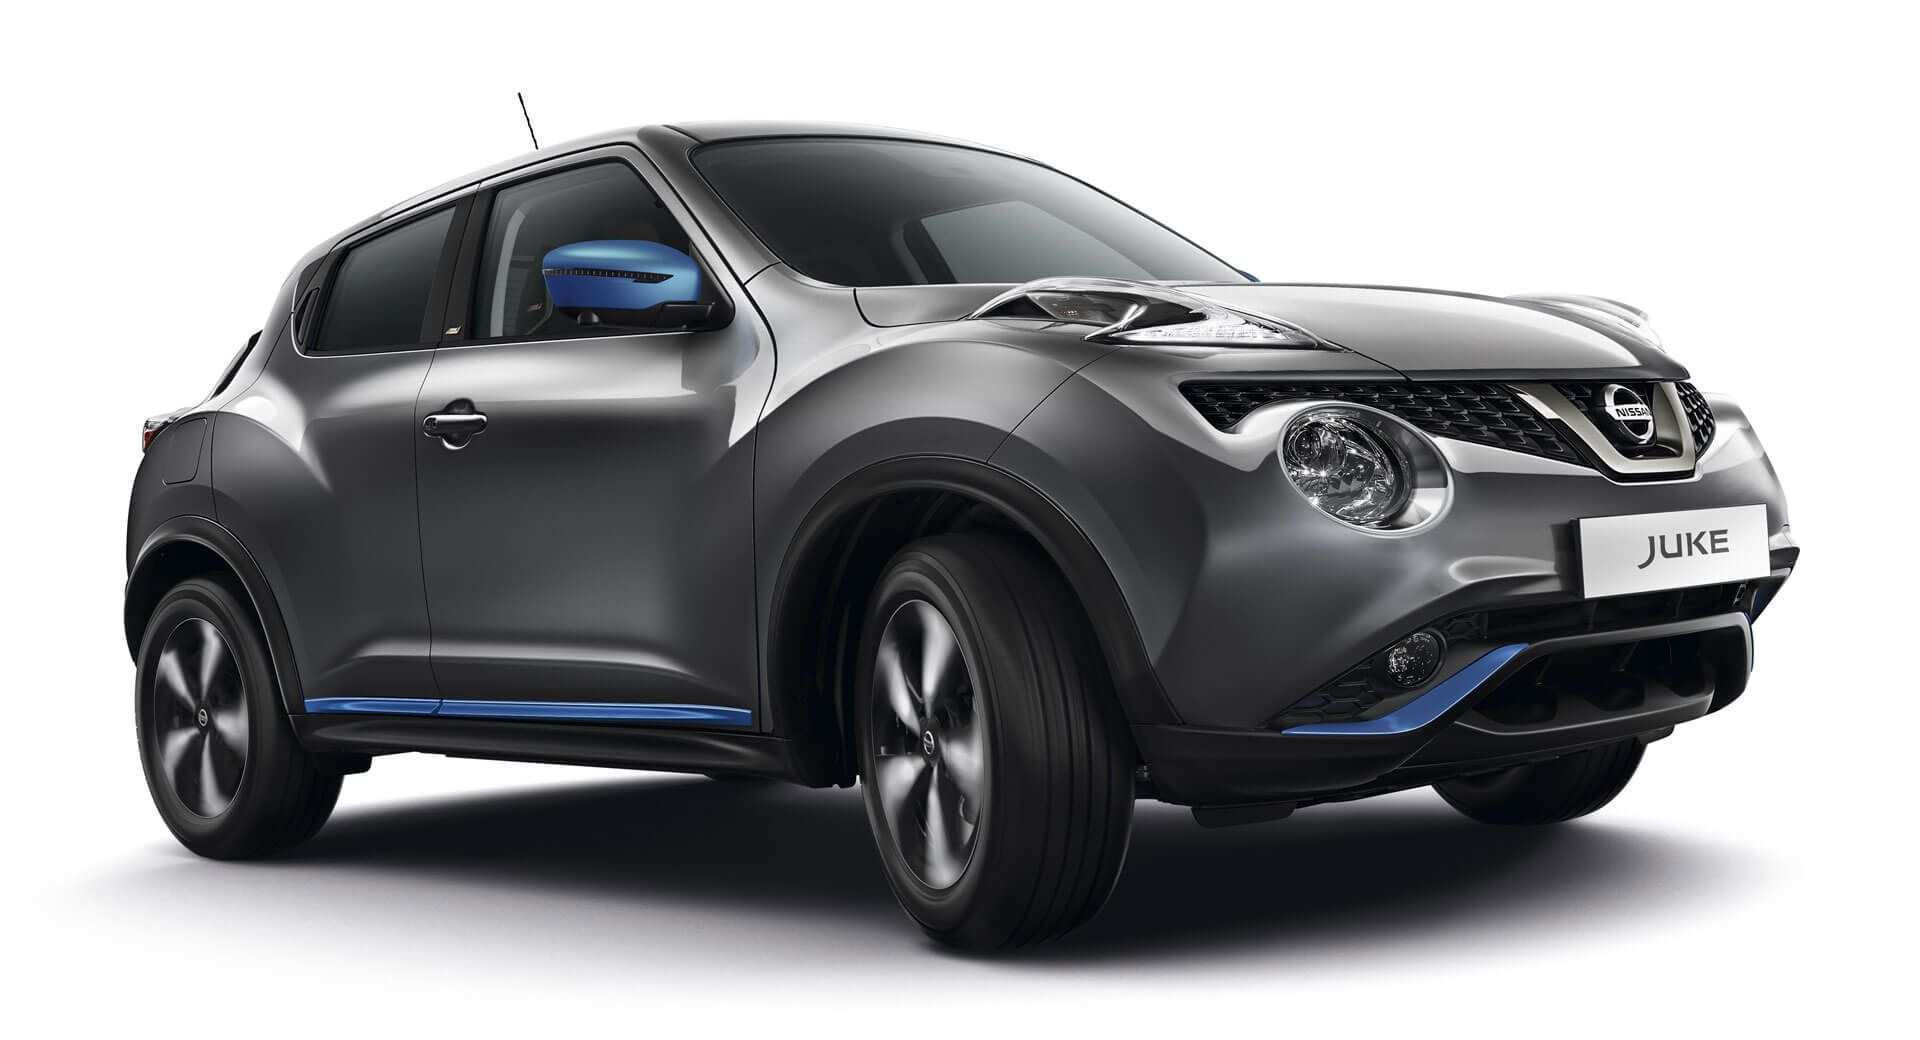 52 Gallery of The Nissan Juke 2019 Review New Release Review for The Nissan Juke 2019 Review New Release